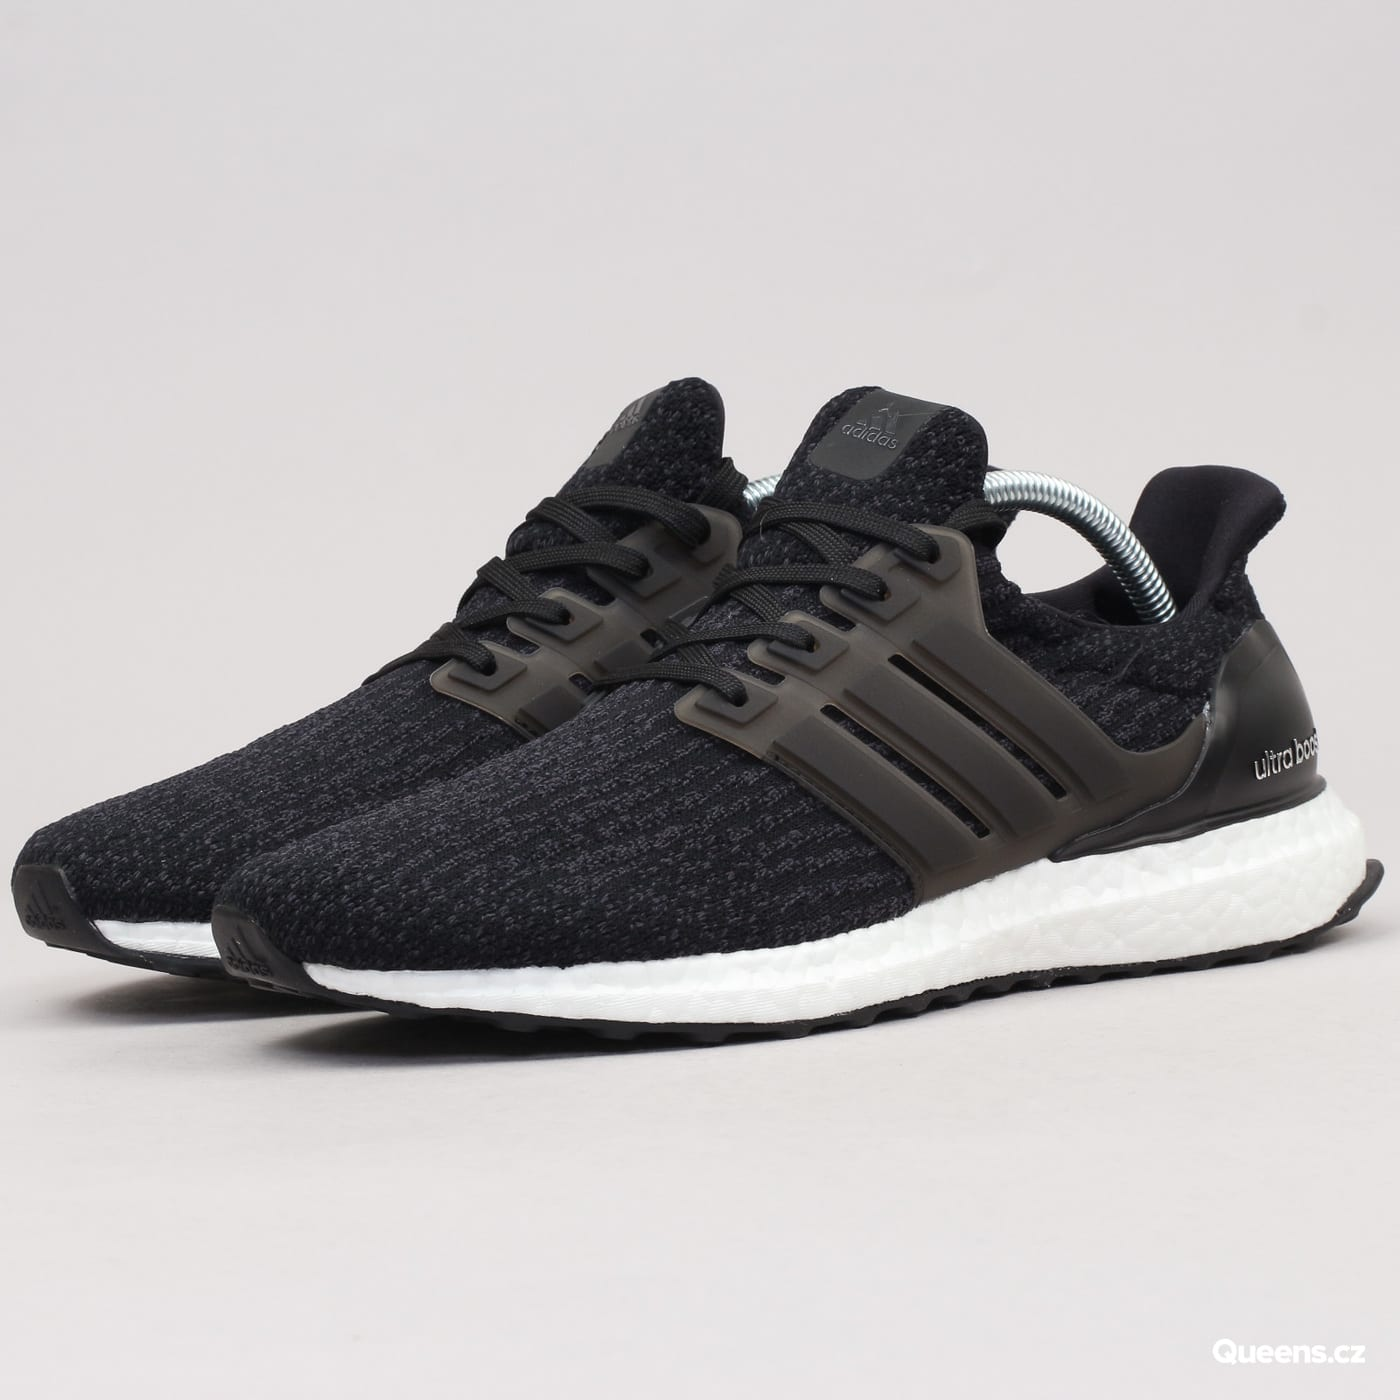 adidas UltraBoost black / white